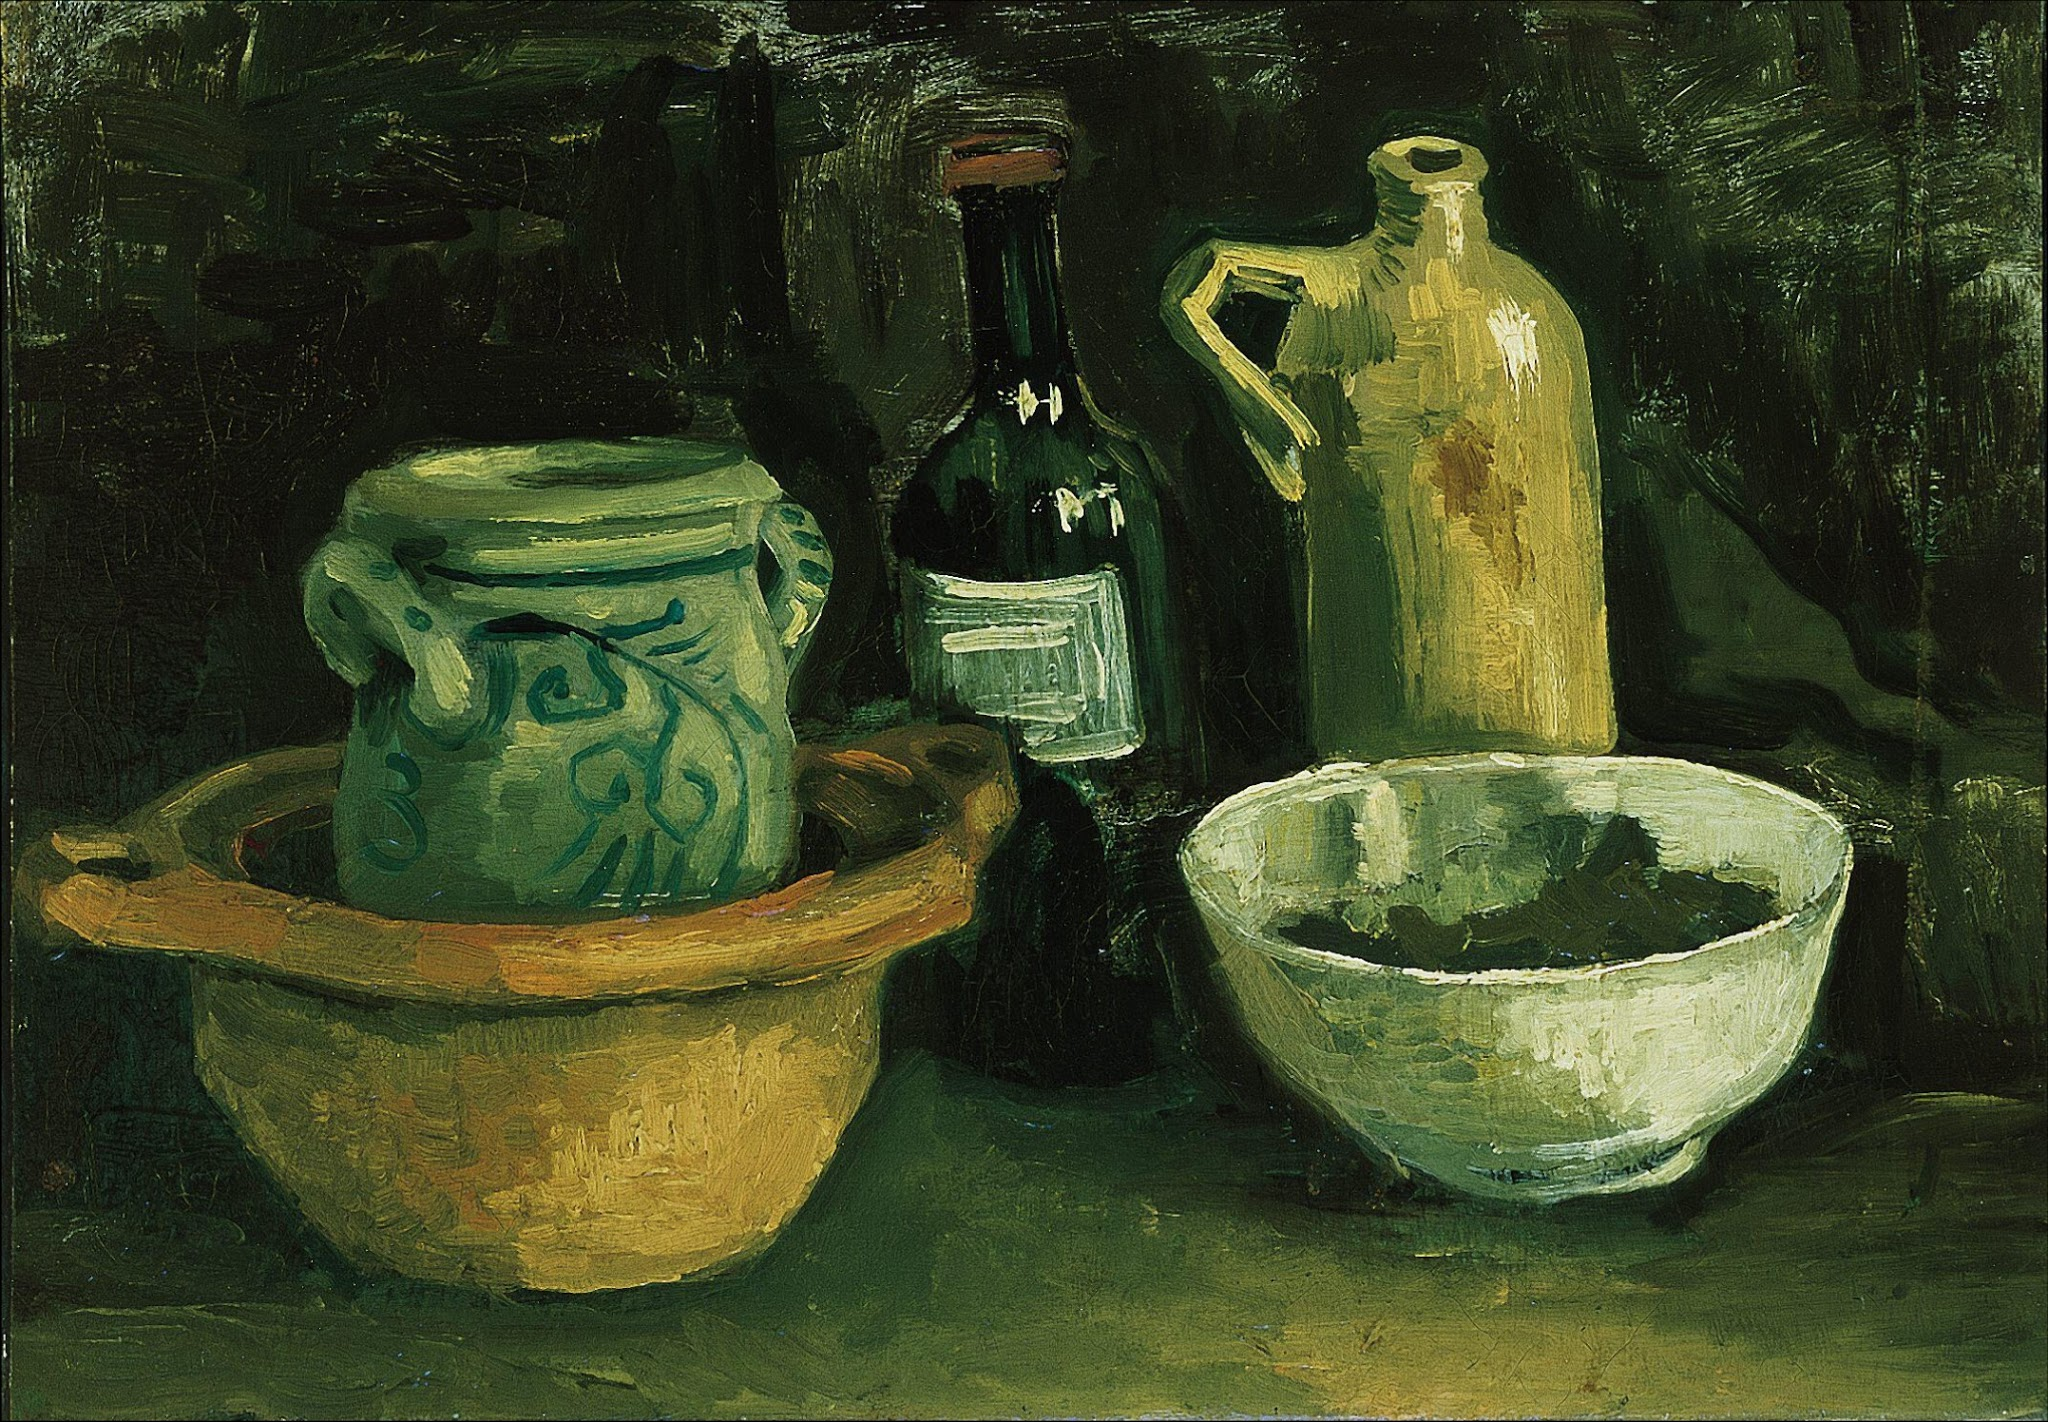 Still Life with Pottery and Two Bottles (F 57, JH 539) by Vincent van Gogh